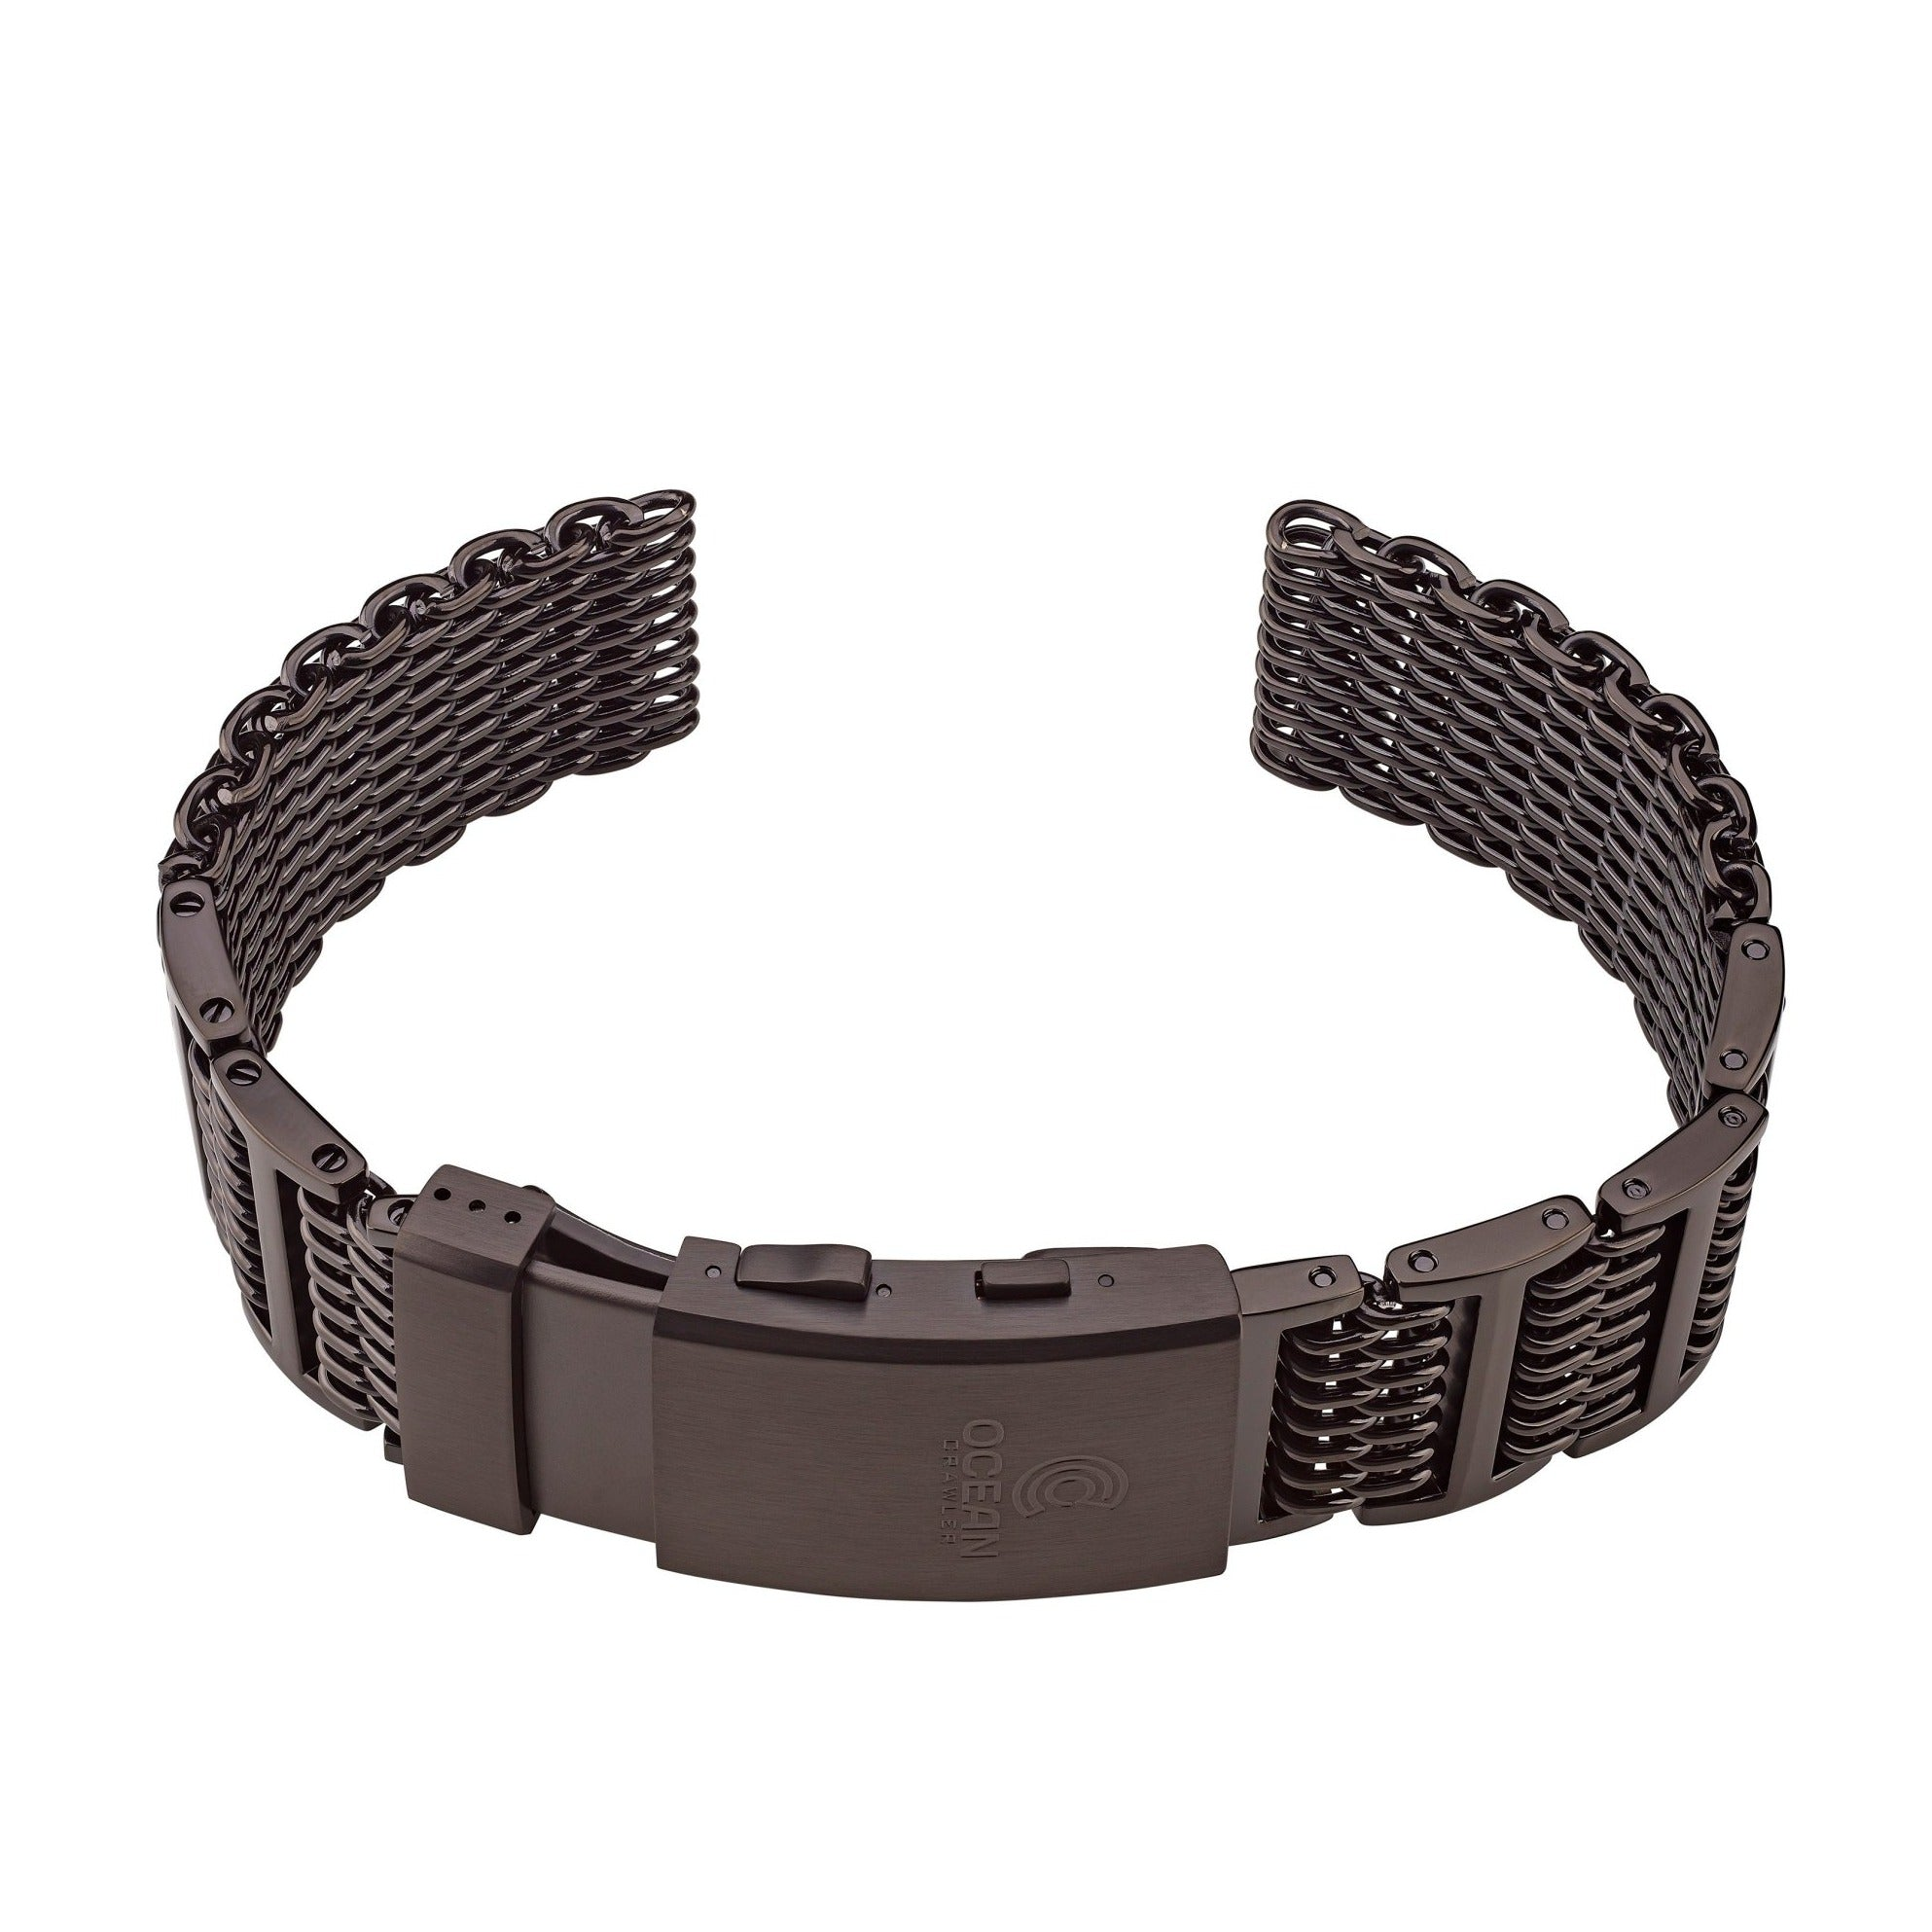 Ocean Crawler Shark Mesh With Ratchet Extension Clasp - DLC - 22m - Ocean Crawler Watch Co.